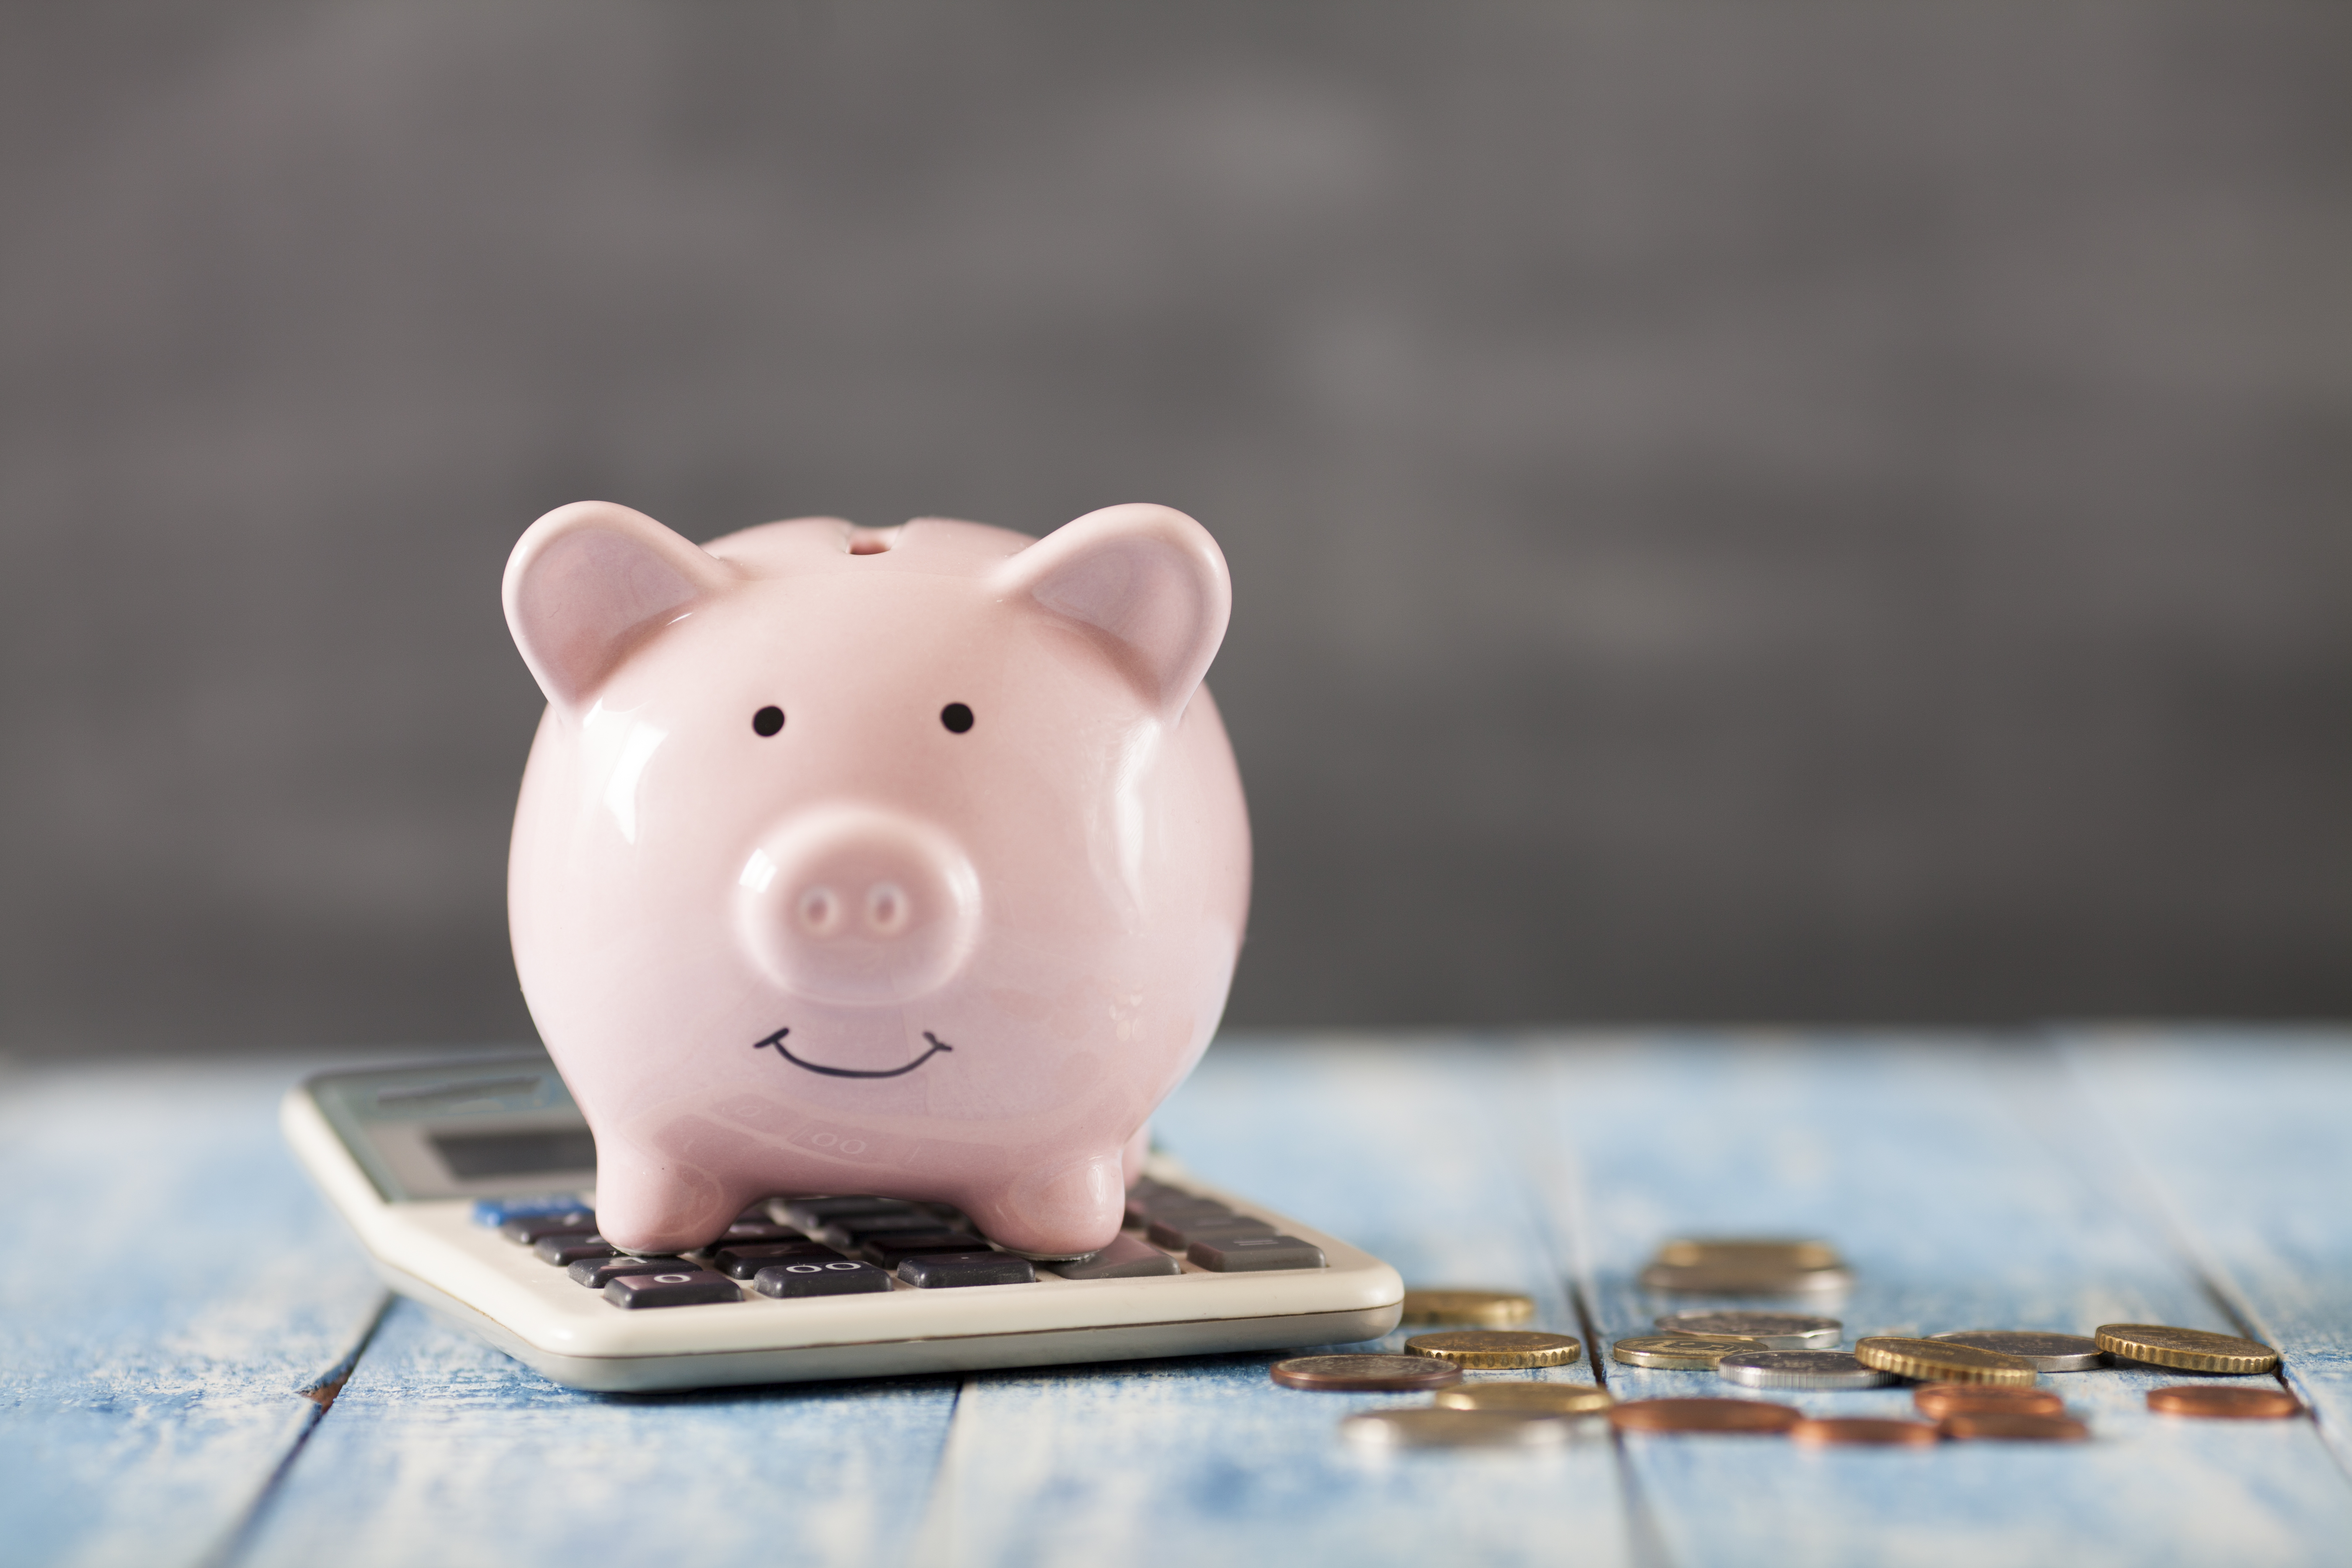 Expert Advice for Budgeting, Expert Tips on Saving, First Alliance Credit Union